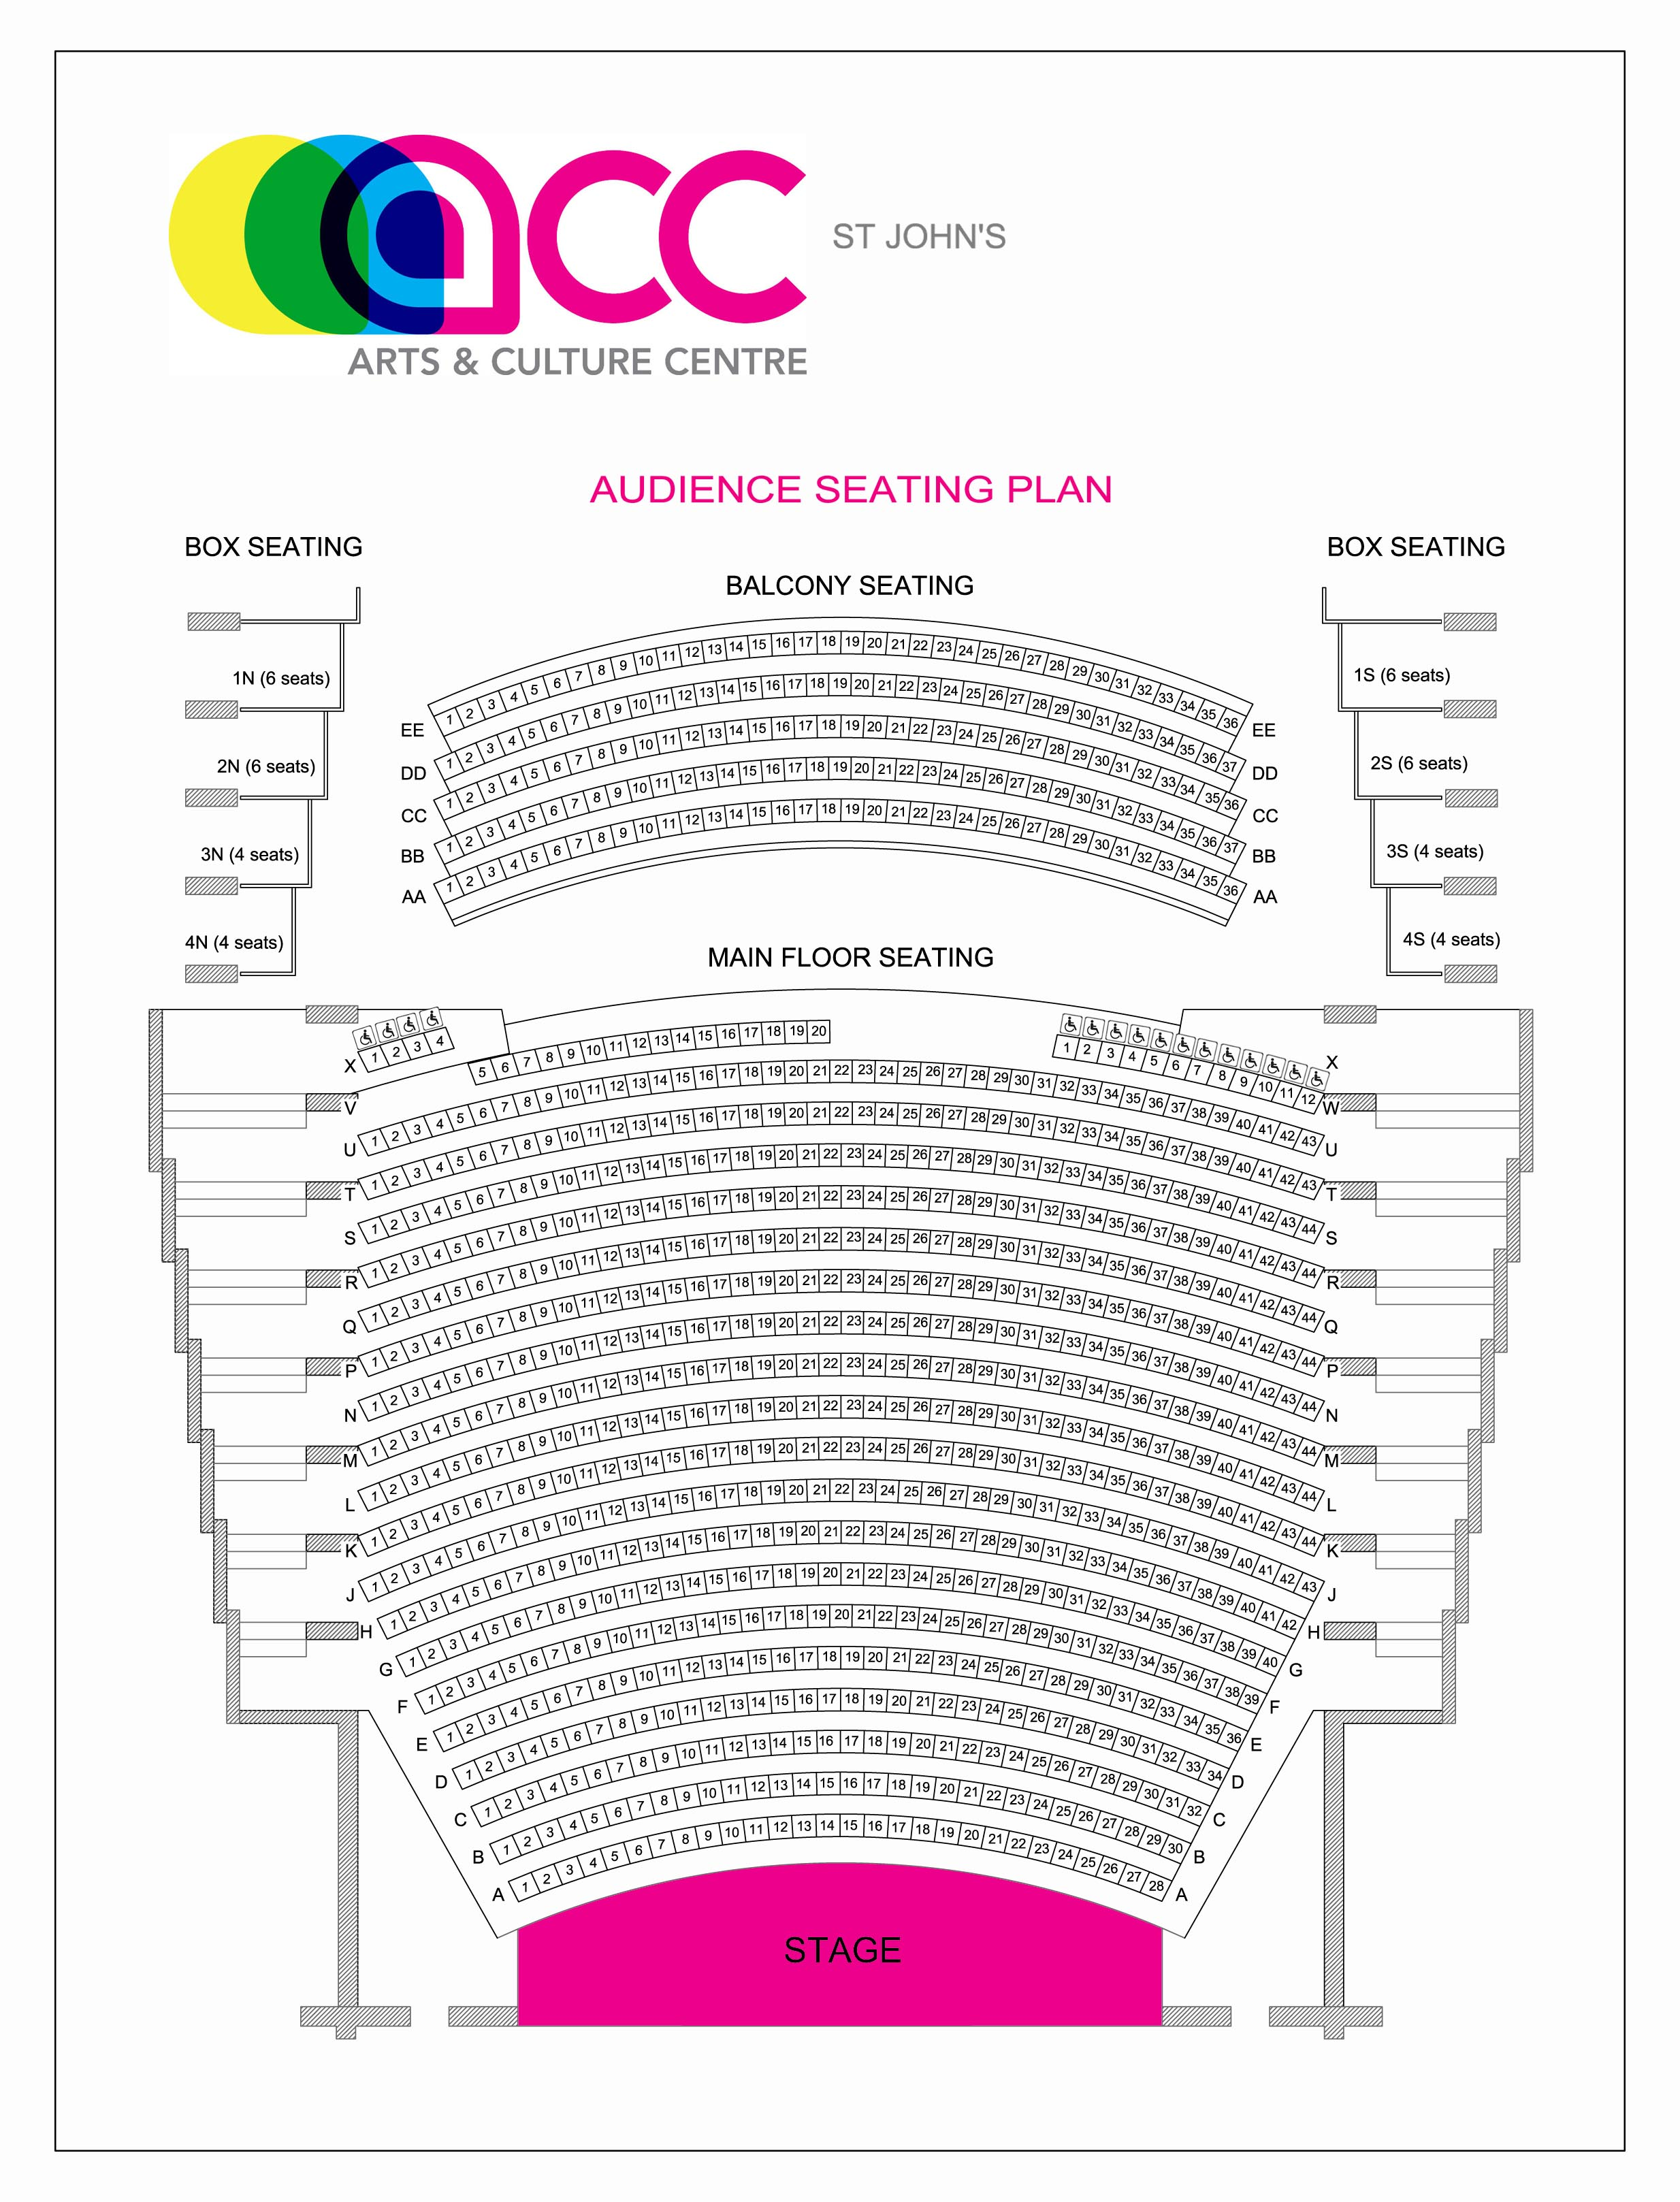 026 Acc St20johns Audience20seating20plan Jan2019 Essay Example Vcu Personal Remarkable Statement Full